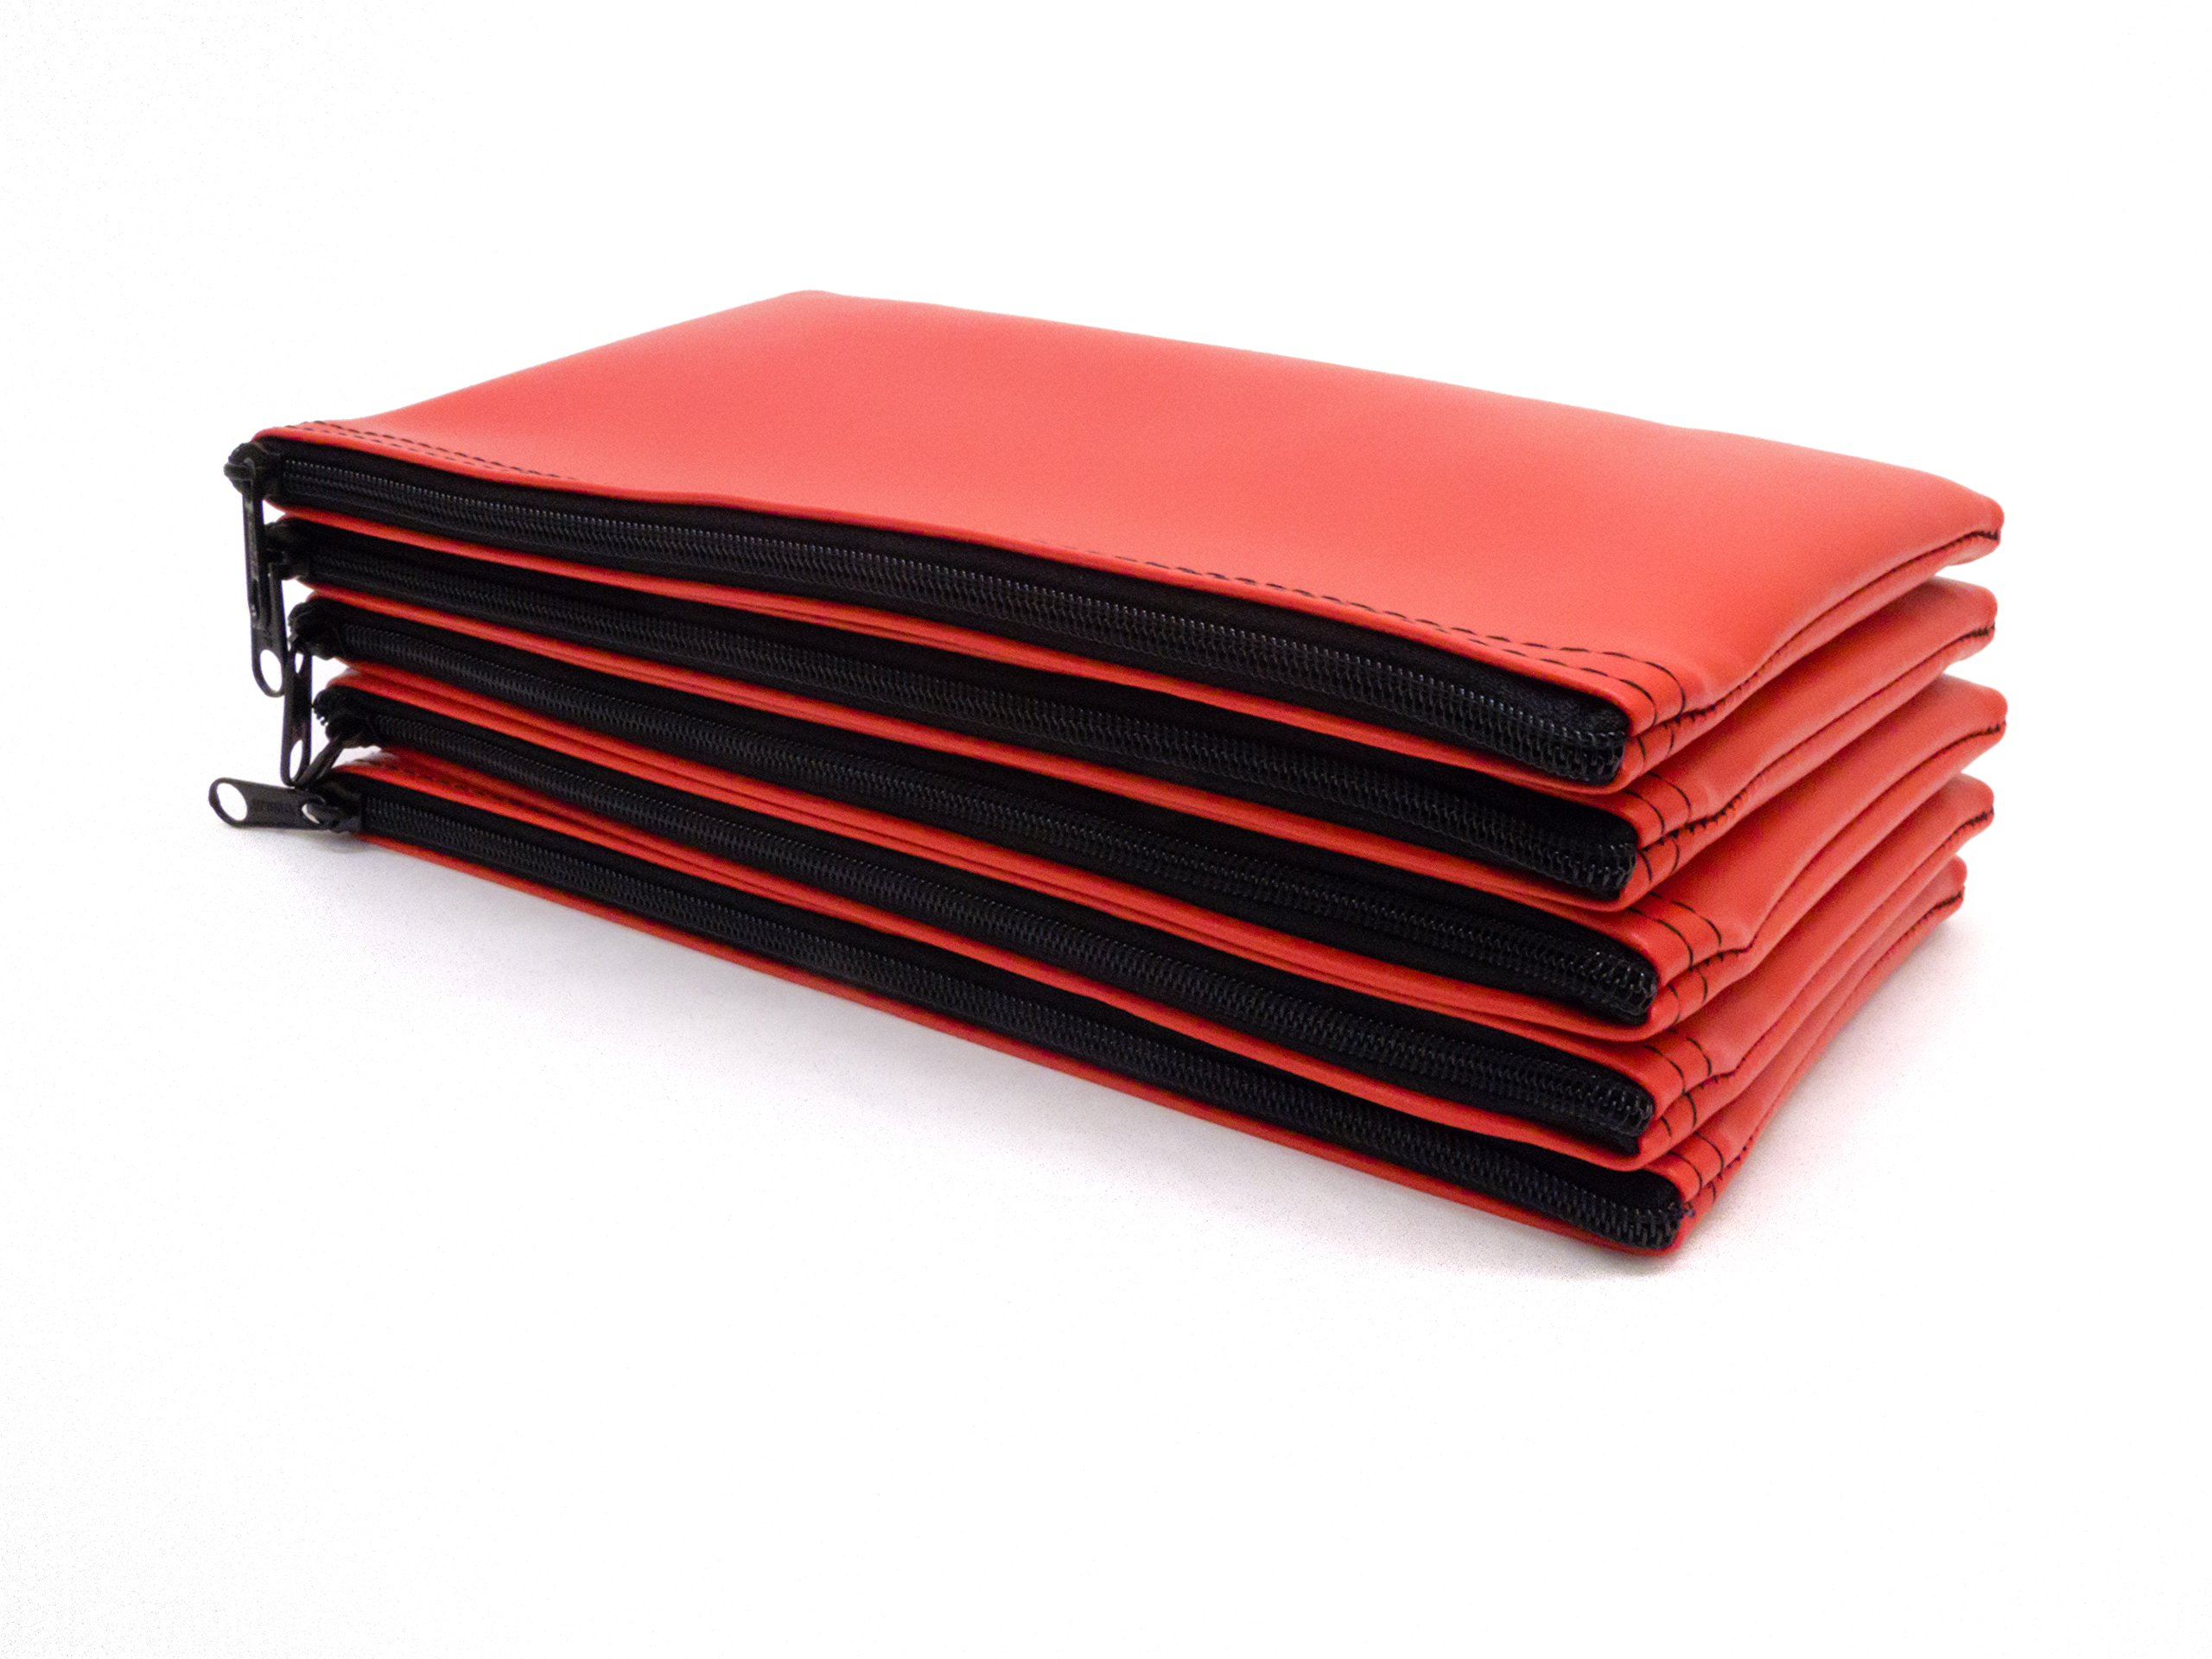 Zipper Bank Deposit Bag 5.5 X 10.5 Coin Check Money Wallet Red Pack of 10 by Carousel Checks Inc. (Image #4)